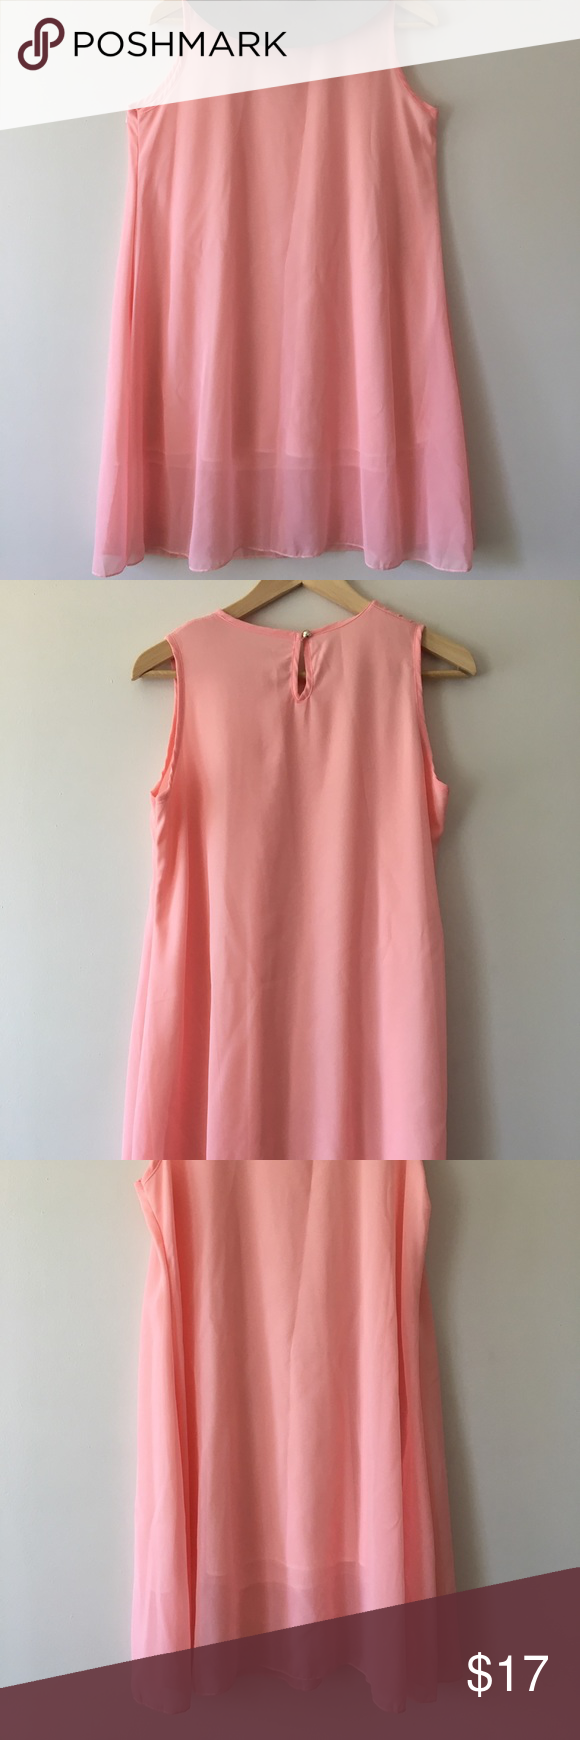 No Label Simple Mine Pink Dress Size M Dresses Pink Dress Clothes For Women